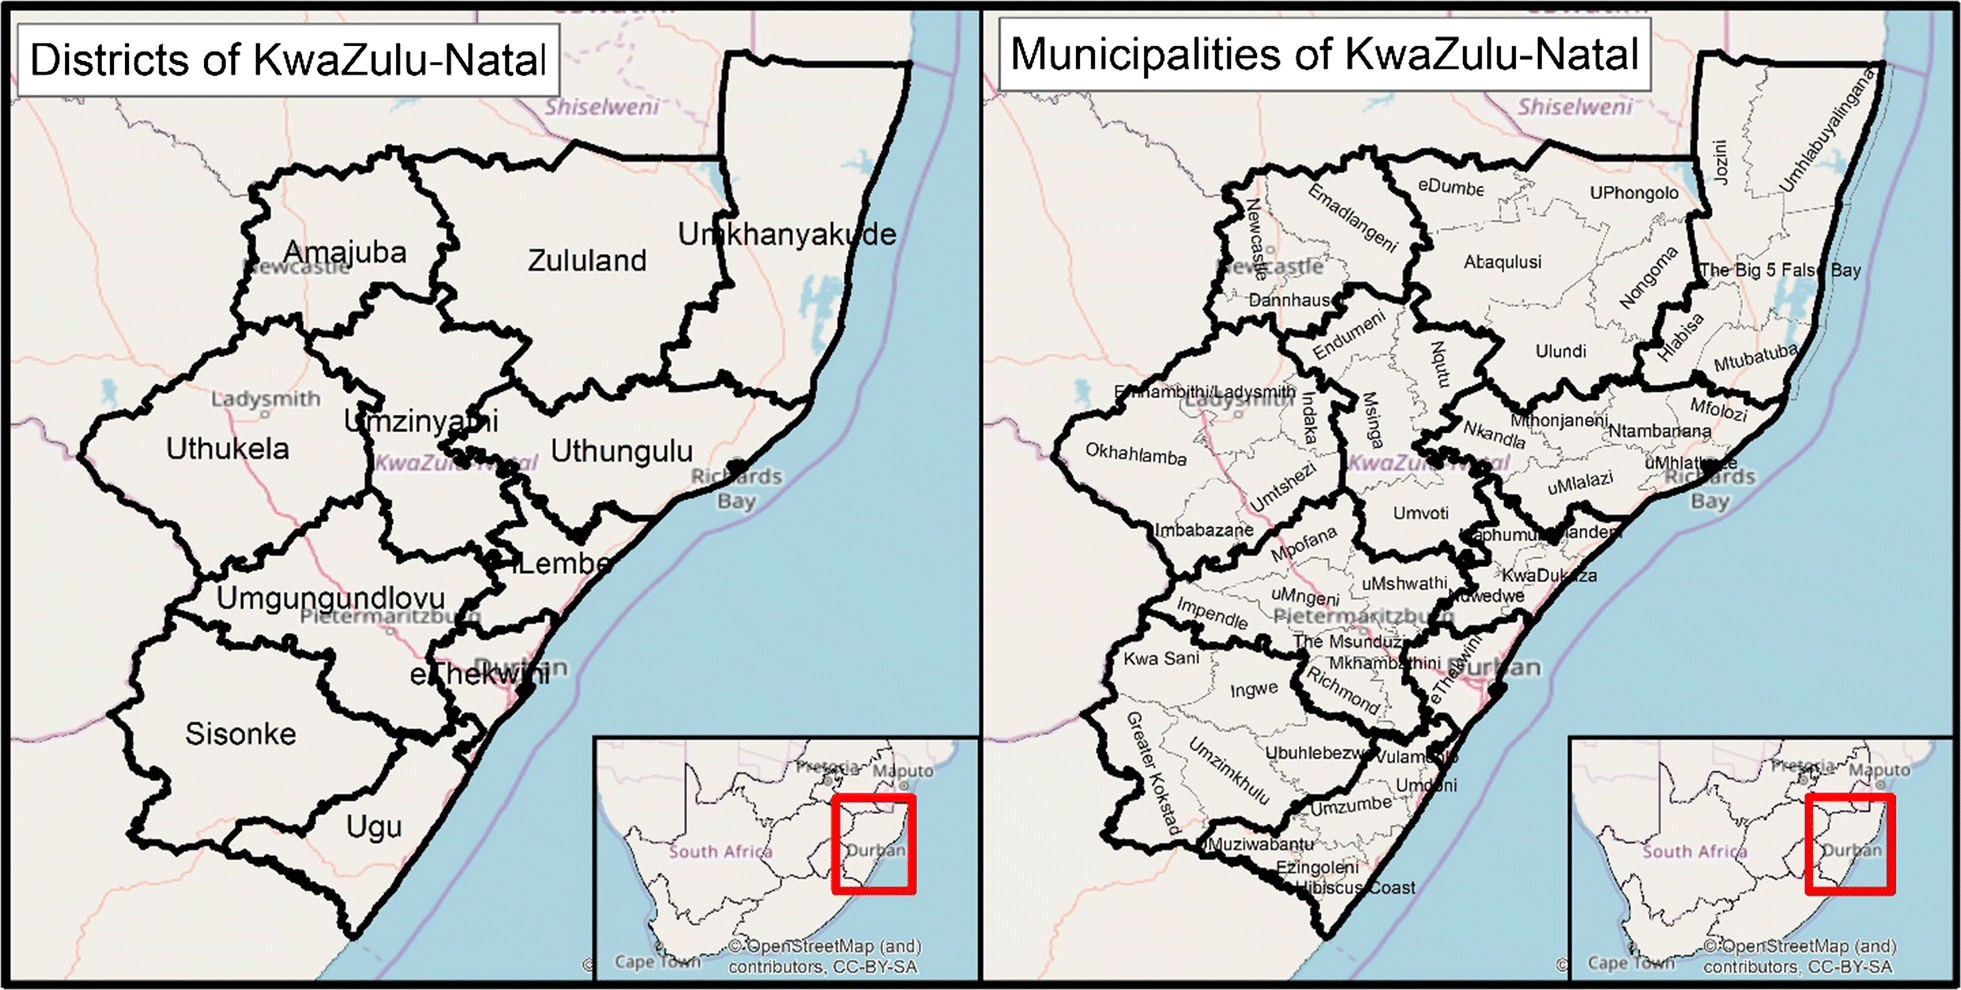 Assessing Kwa-Zulu-Natal's progress towards malaria